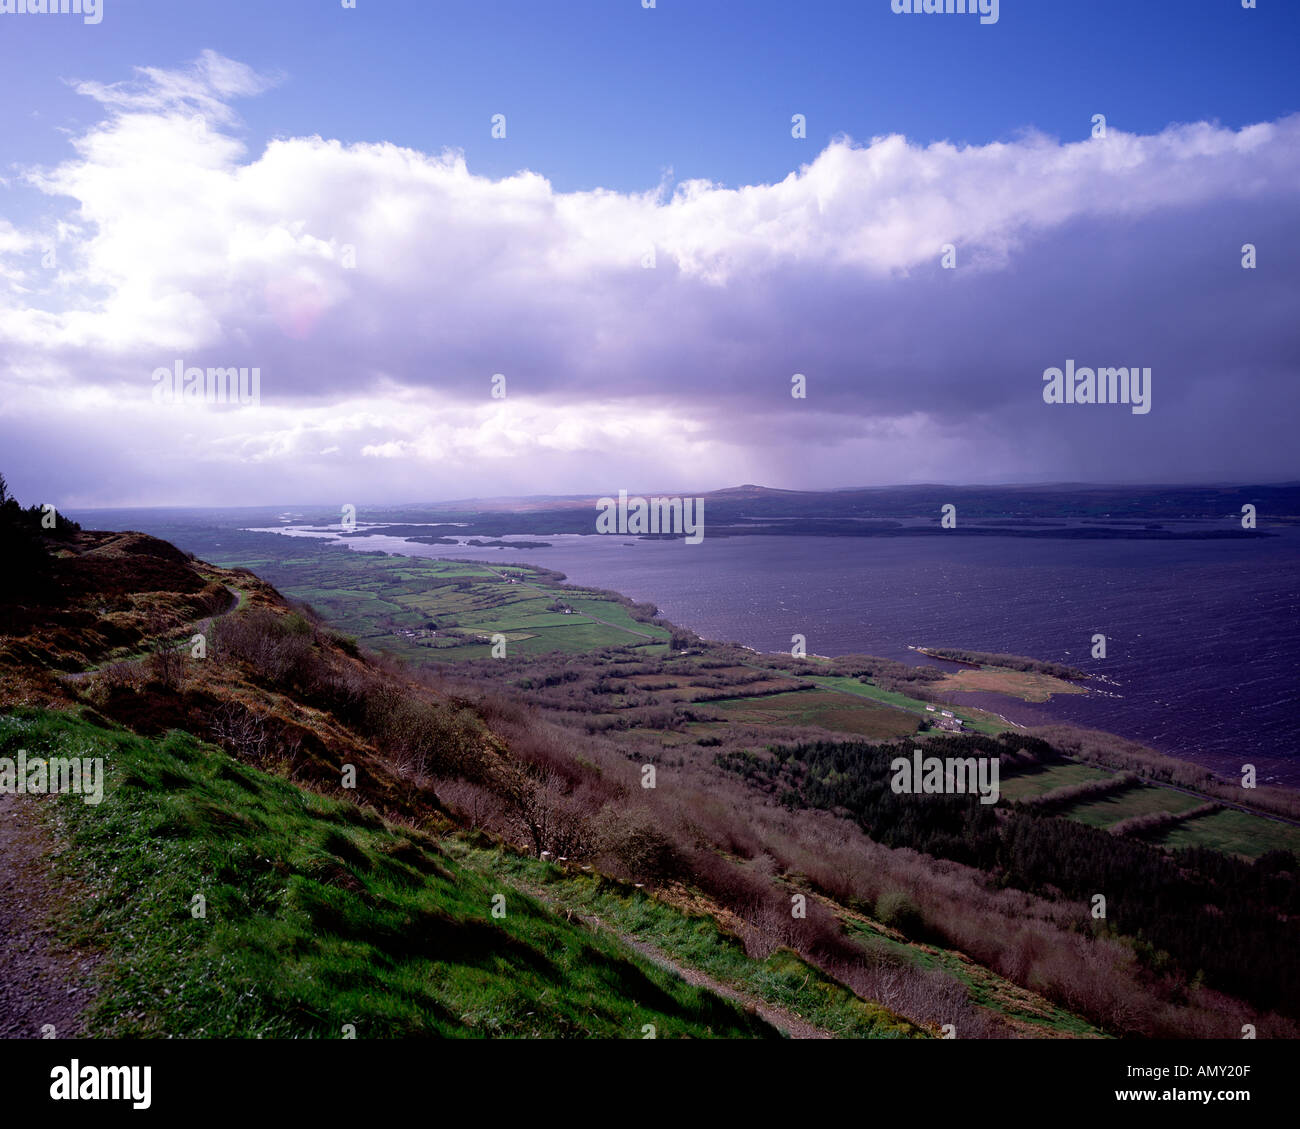 Lower Lough Erne Co Fermanagh - Stock Image